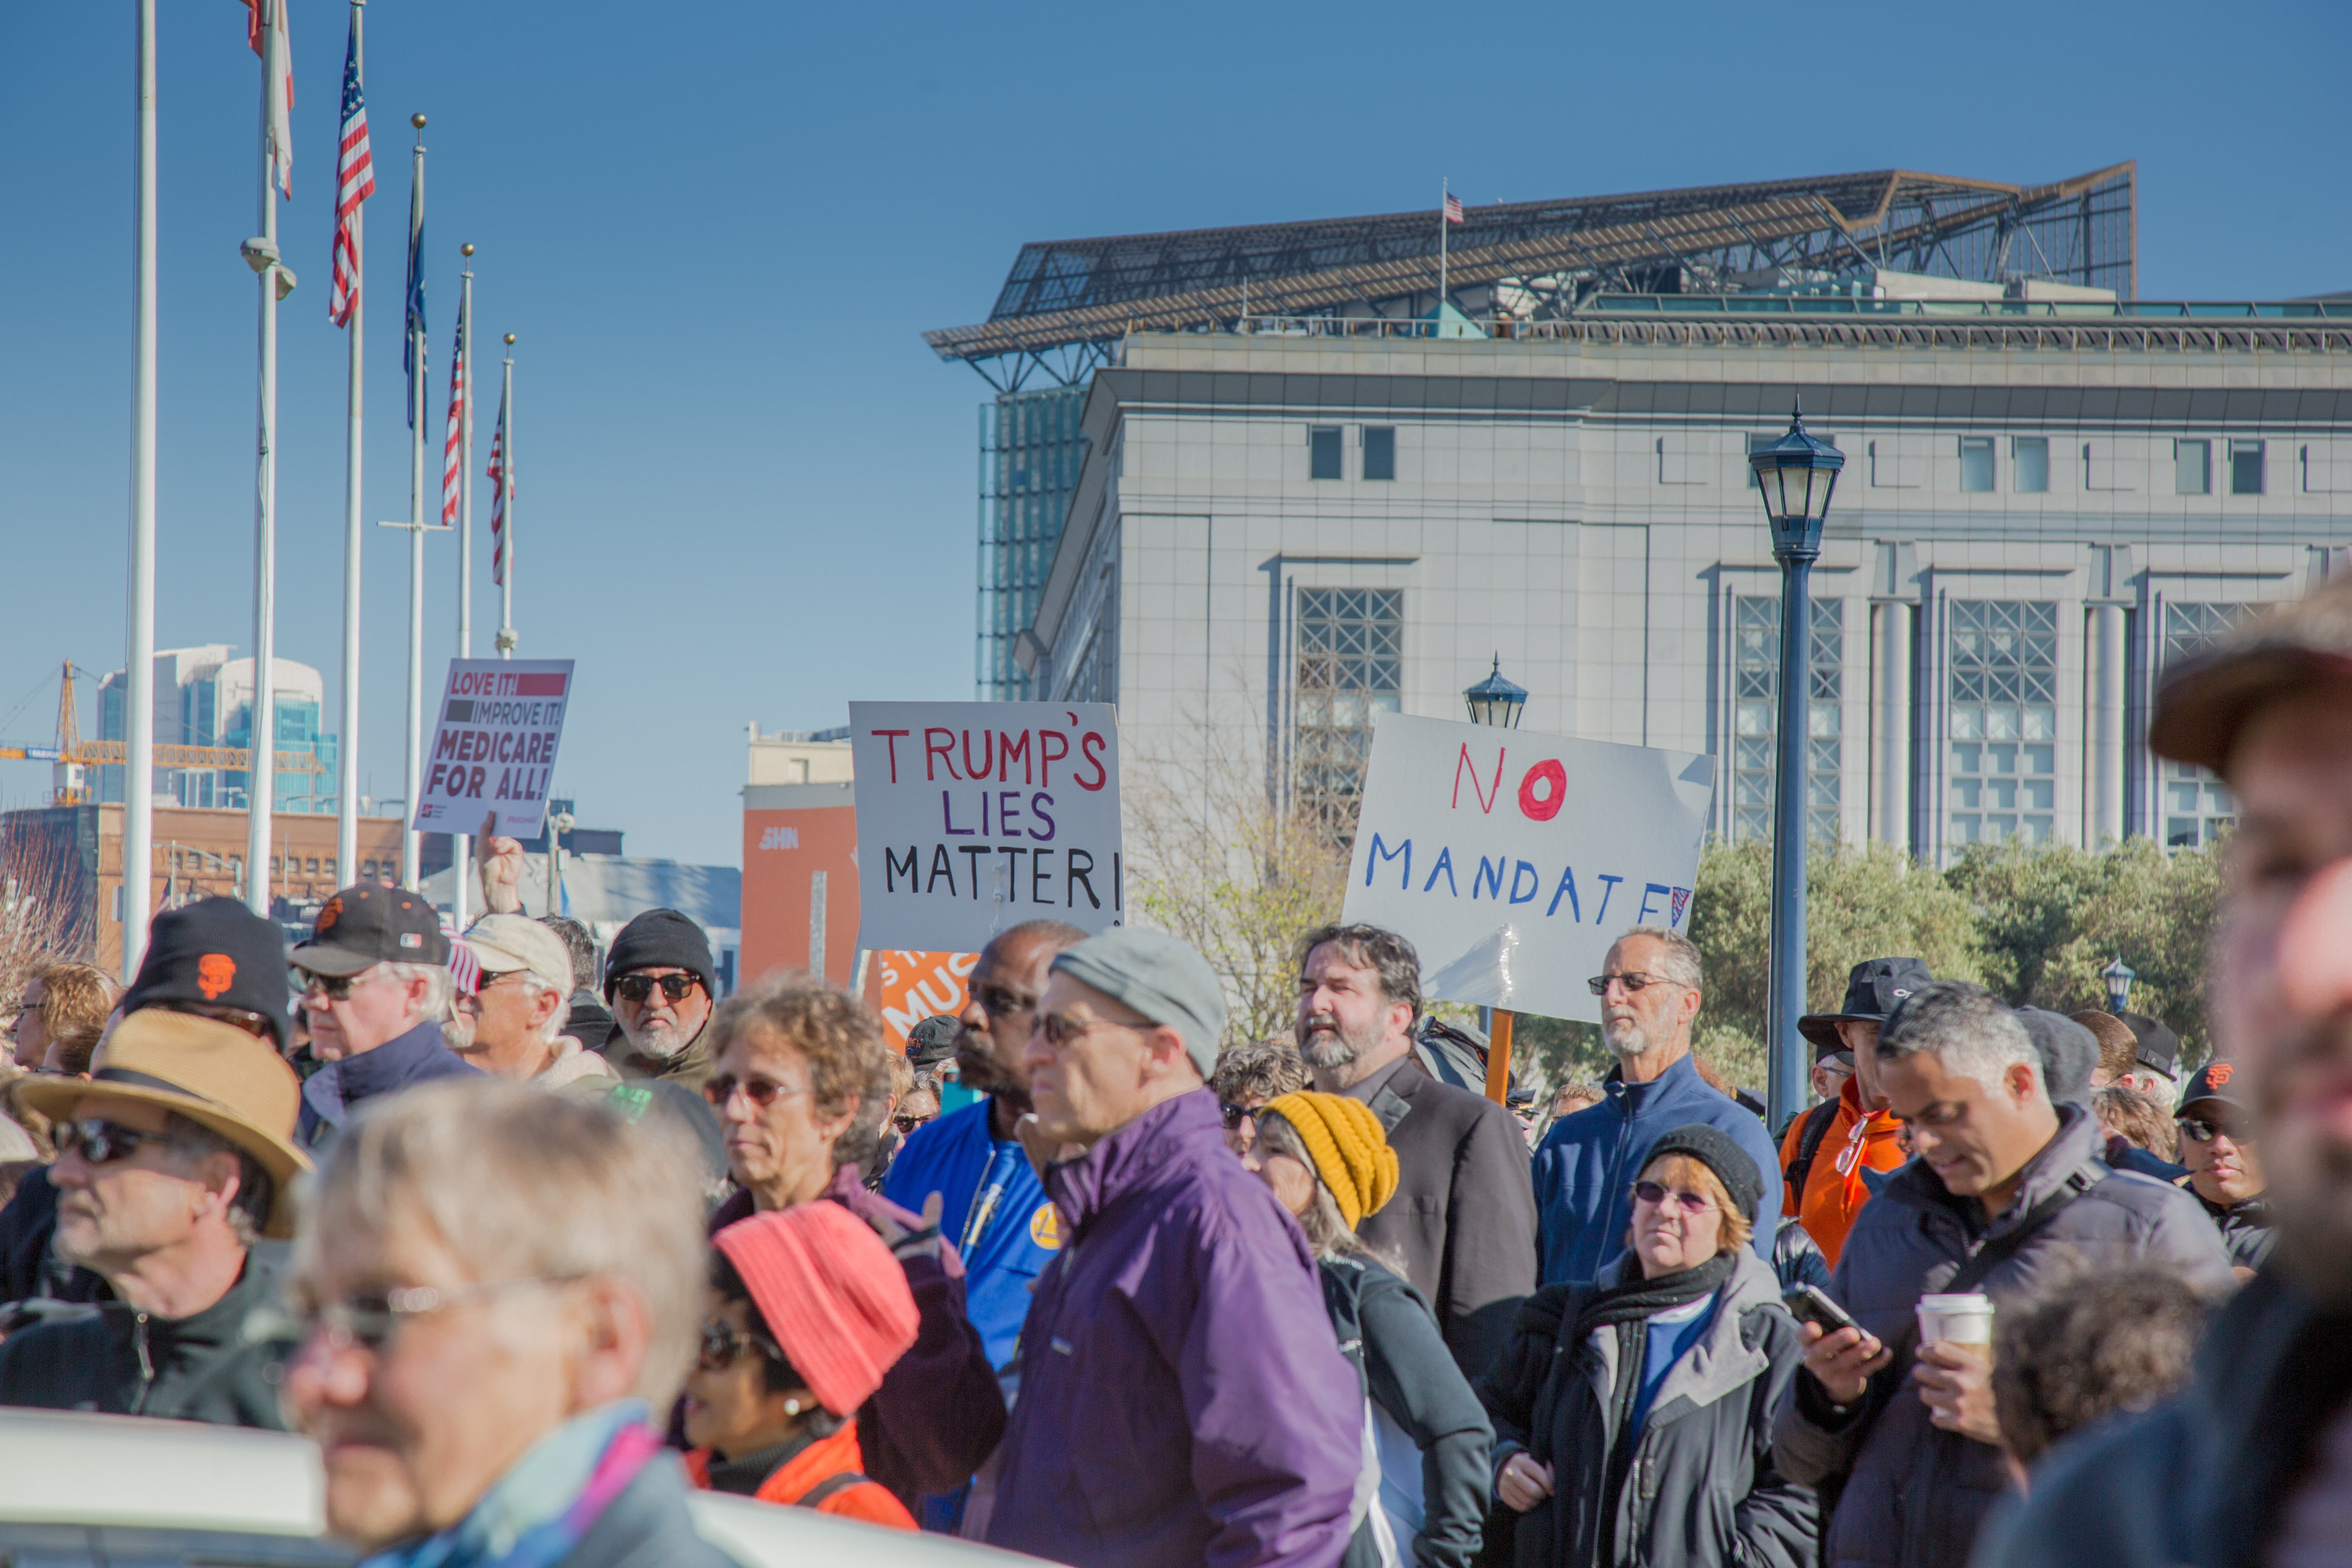 A person holds a sign as people assemble during a Healthcare rally held in front of city hall in downtown San Francisco.